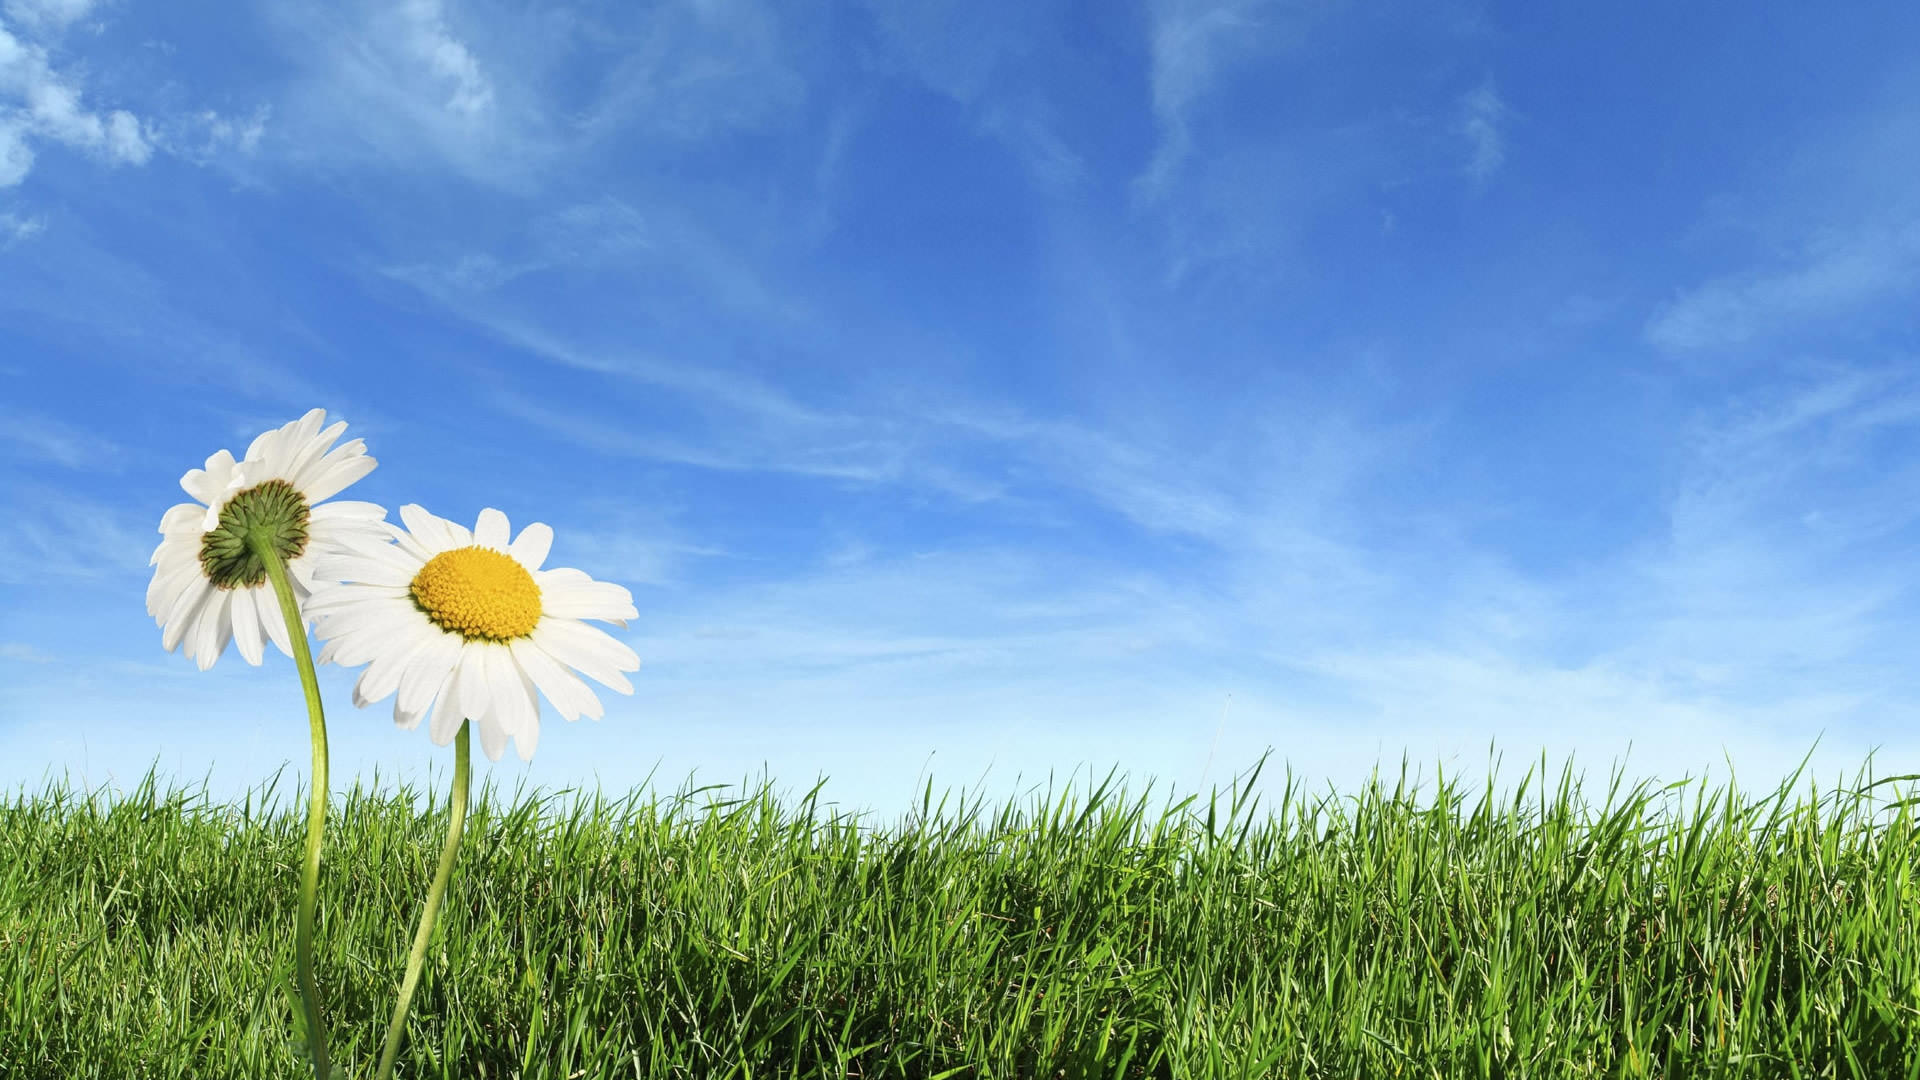 Spring Wallpapers, Spring Backgrounds, Spring Images - Desktop